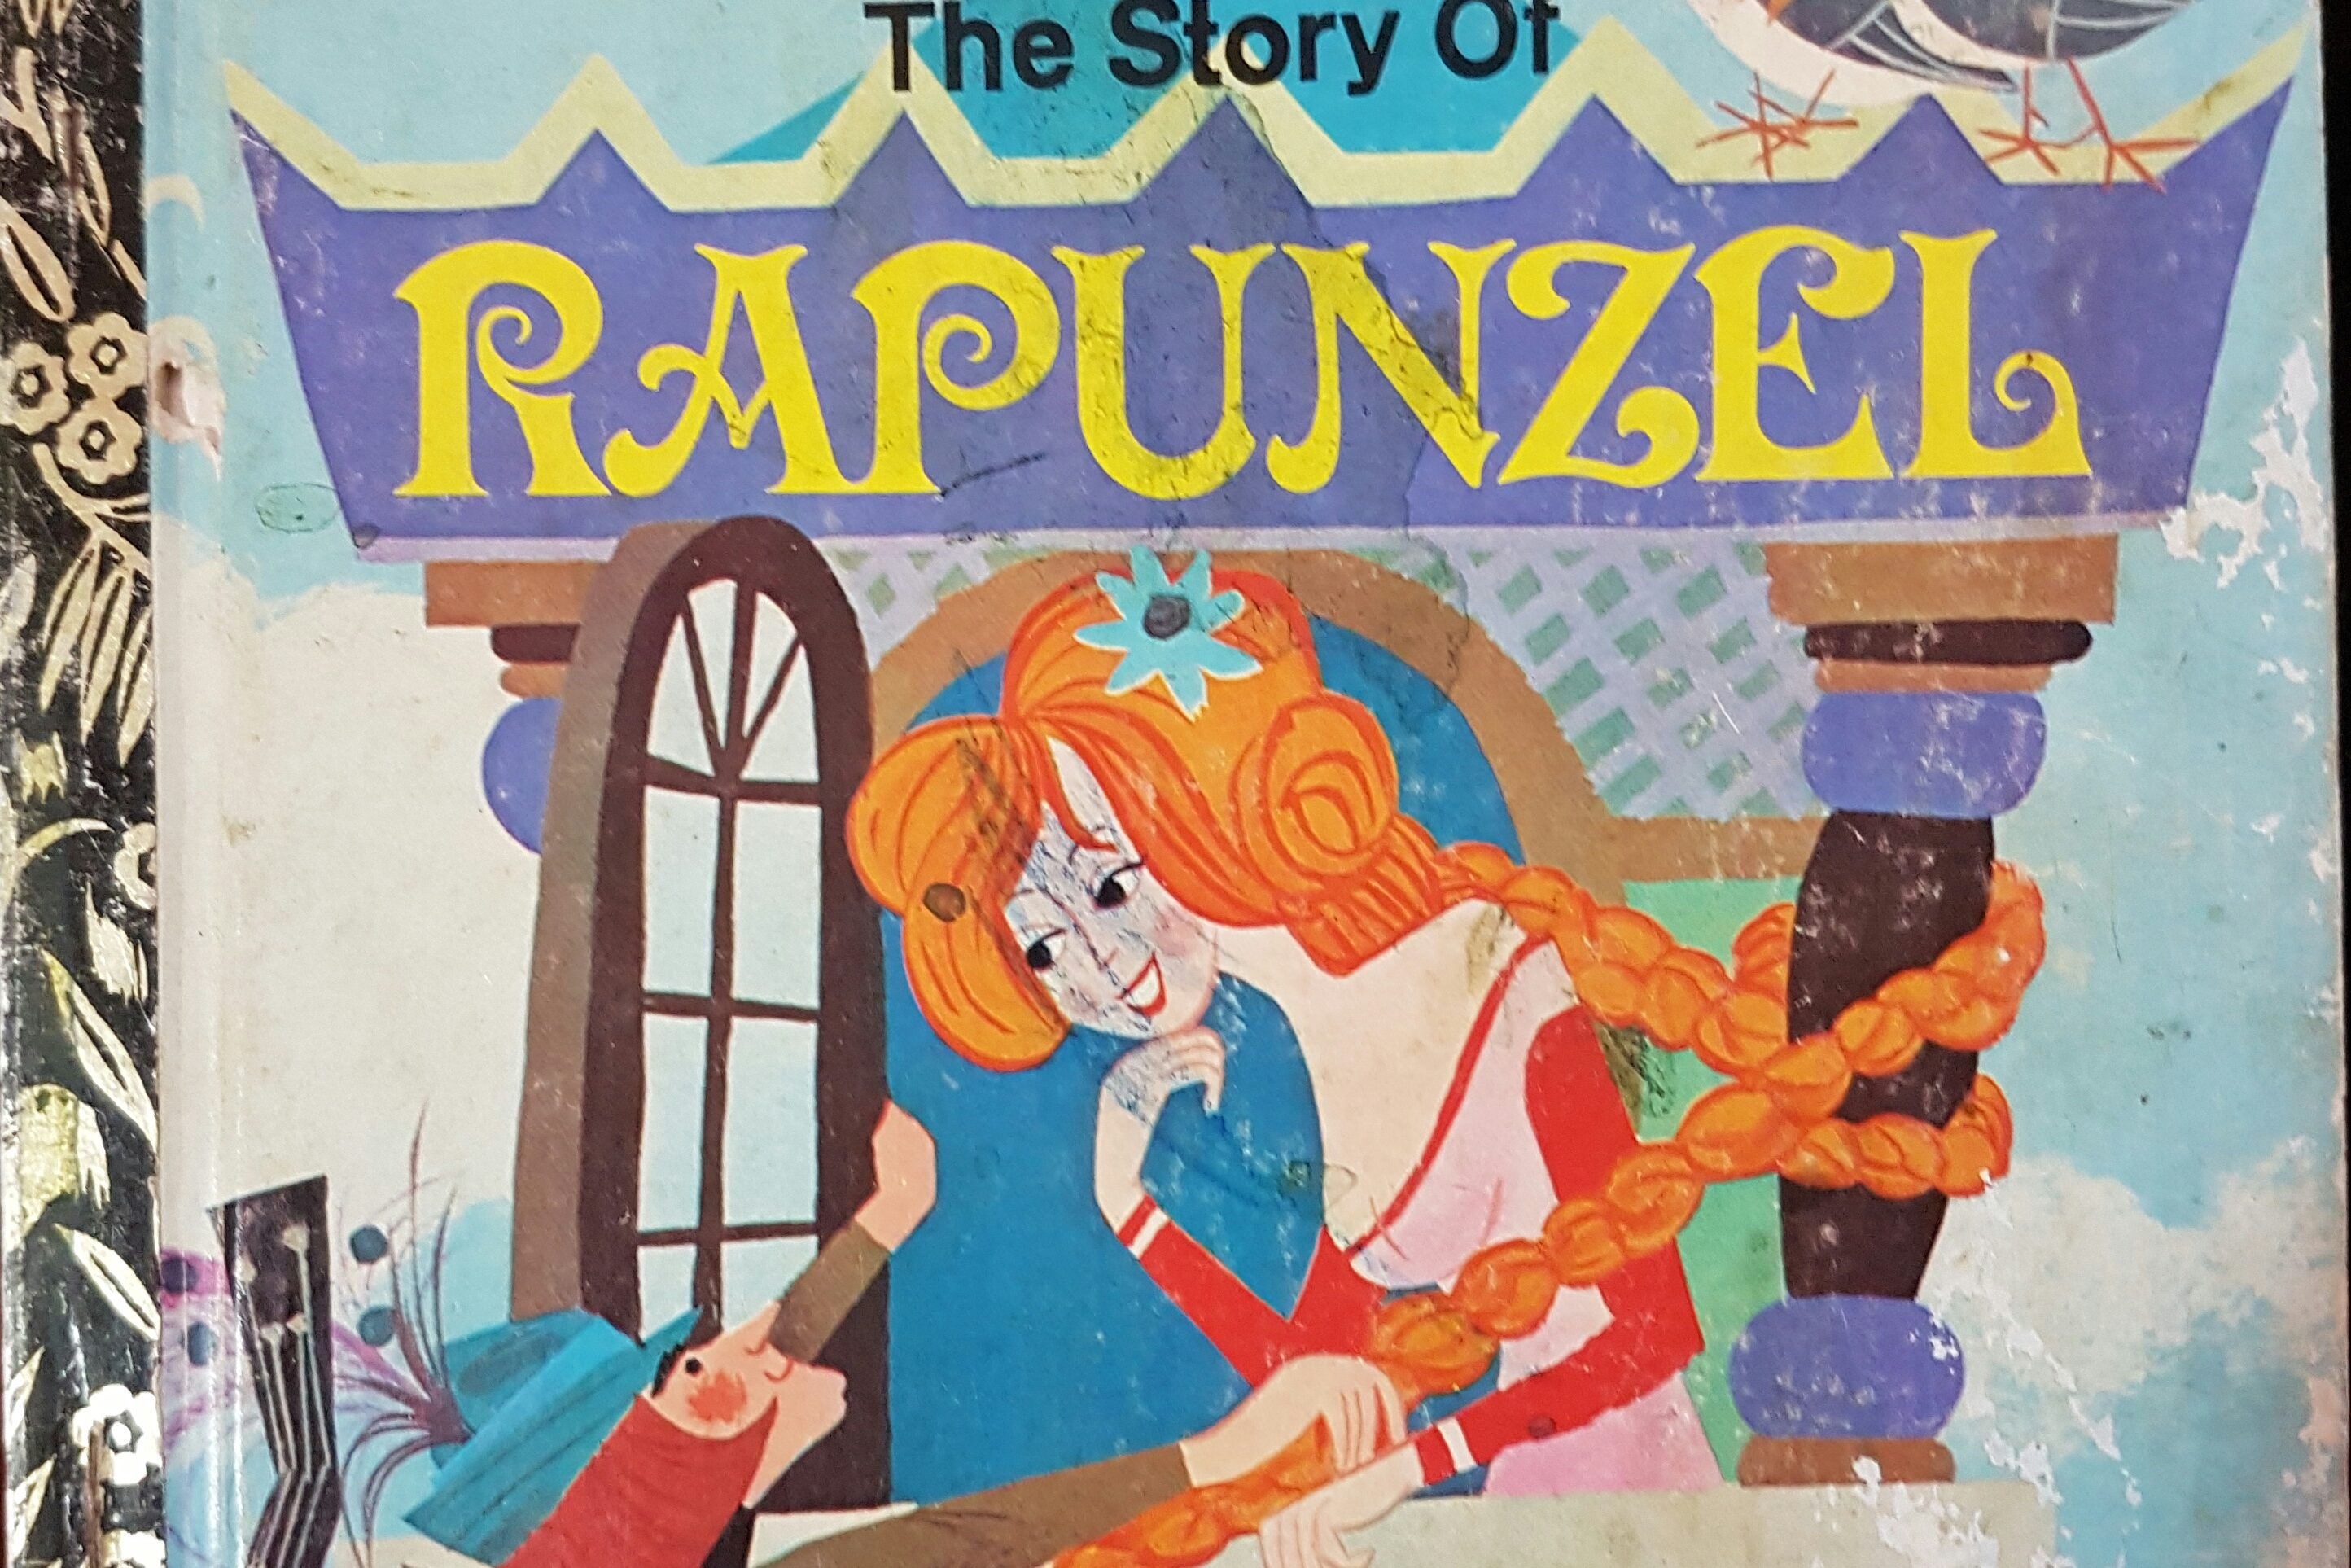 Rapunzel interstate Highway book